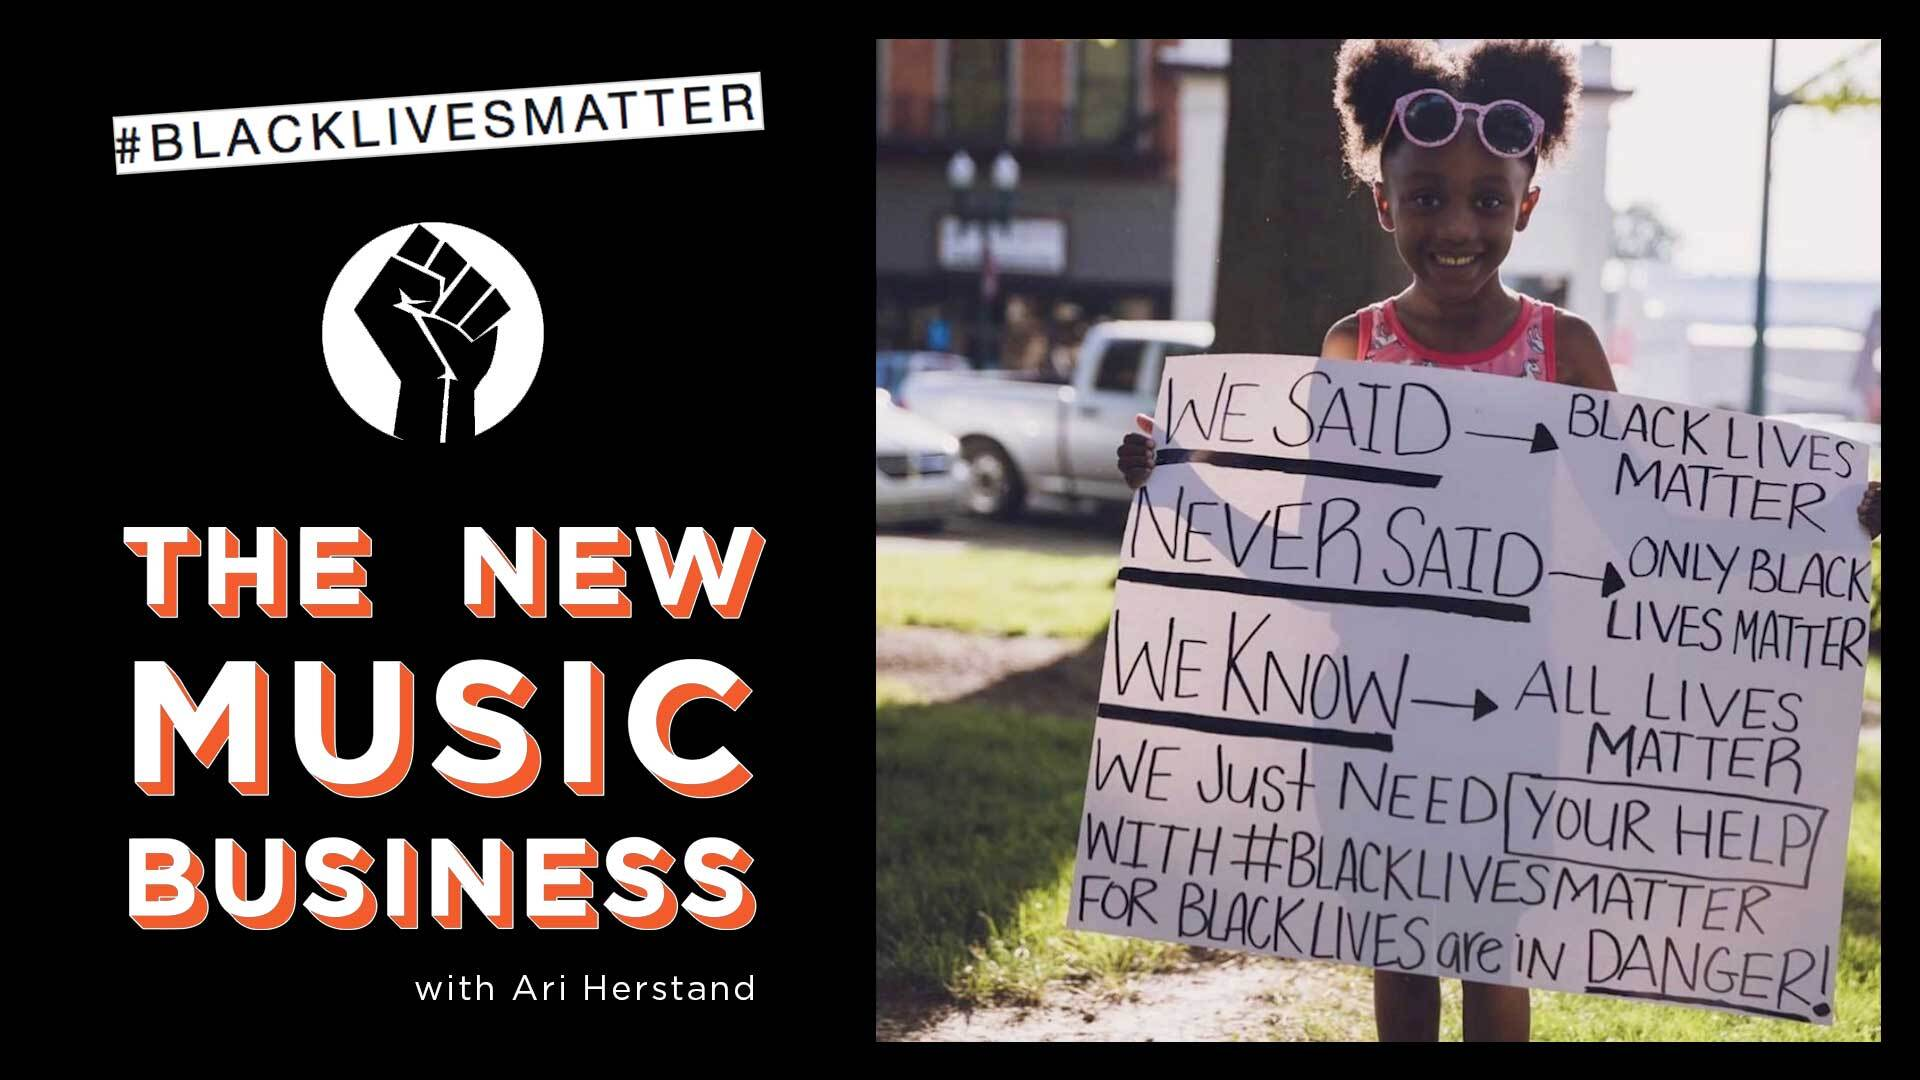 White Musicians for Black Lives